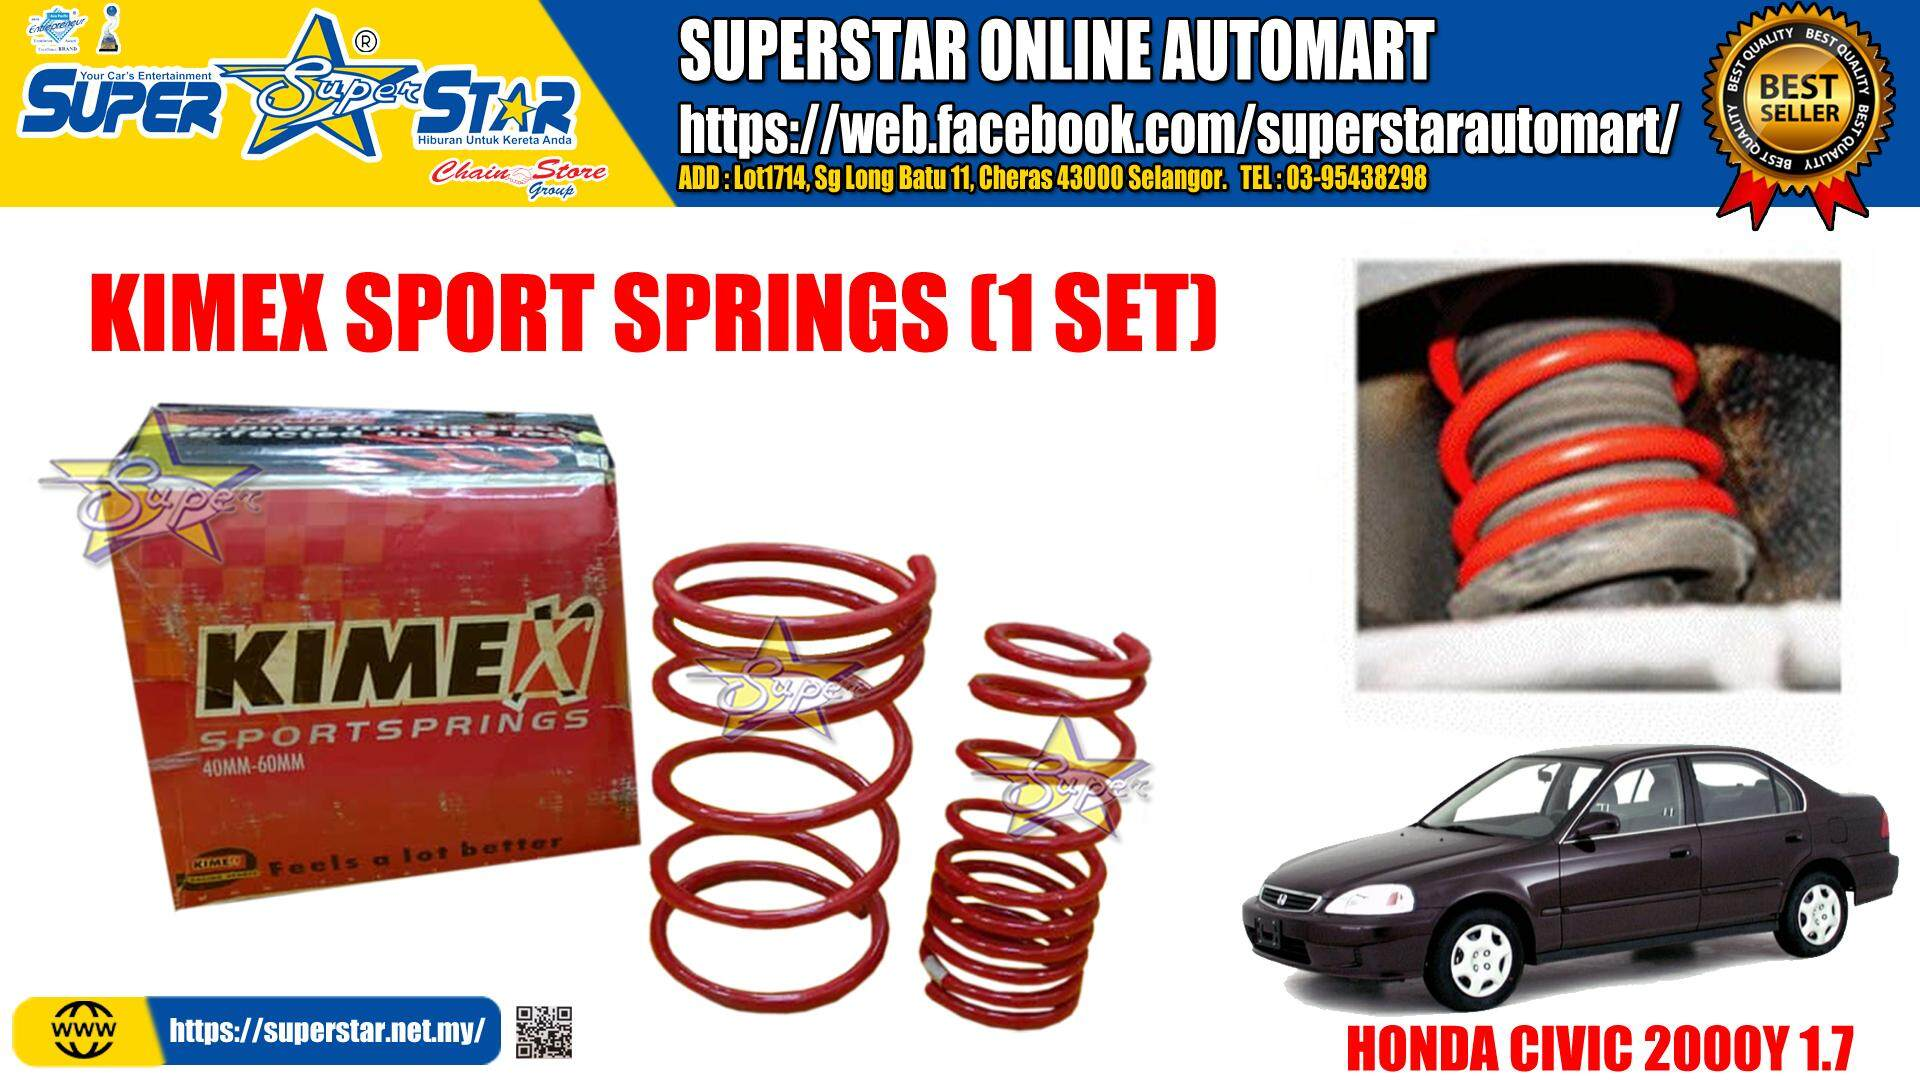 KIMEX SPORT SPRINGS HONDA CIVIC 2000y 1.7 (1 set)